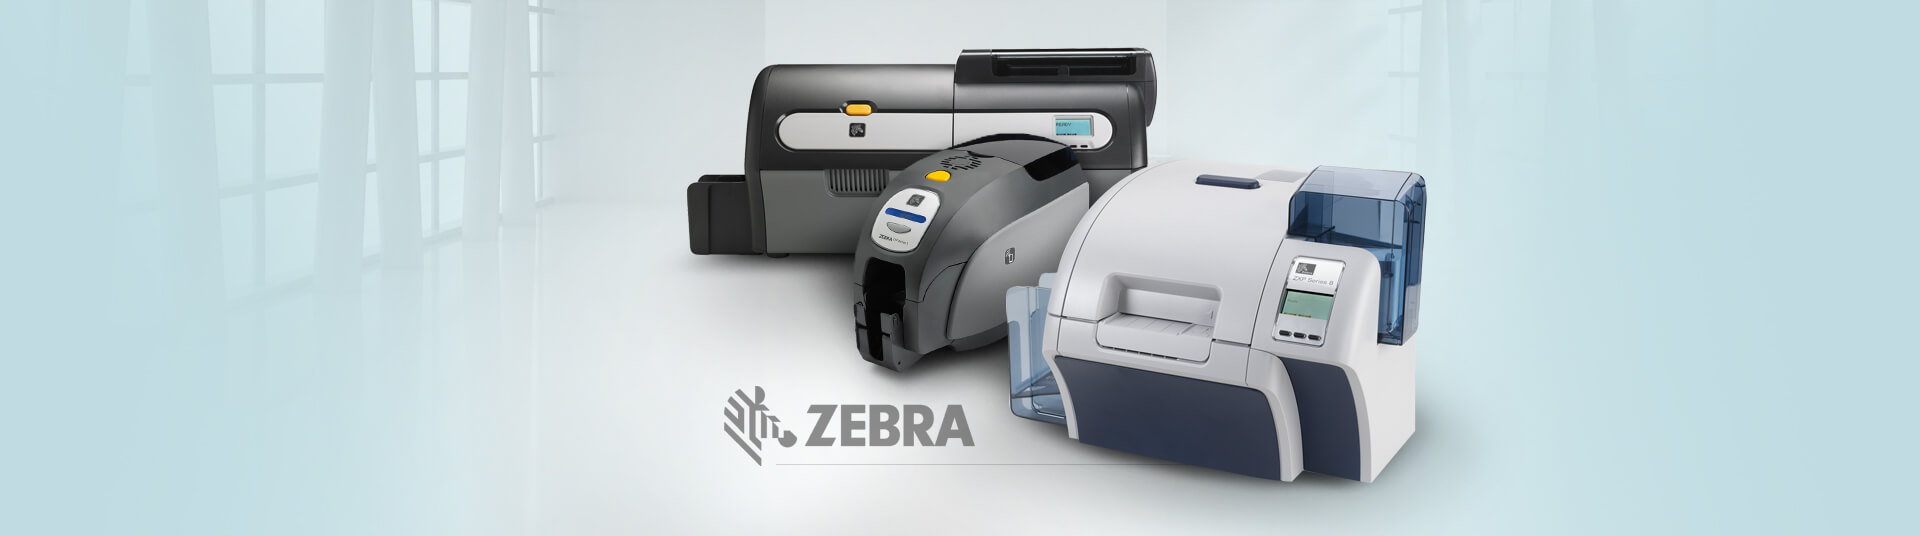 Zebra ID Badge Machine